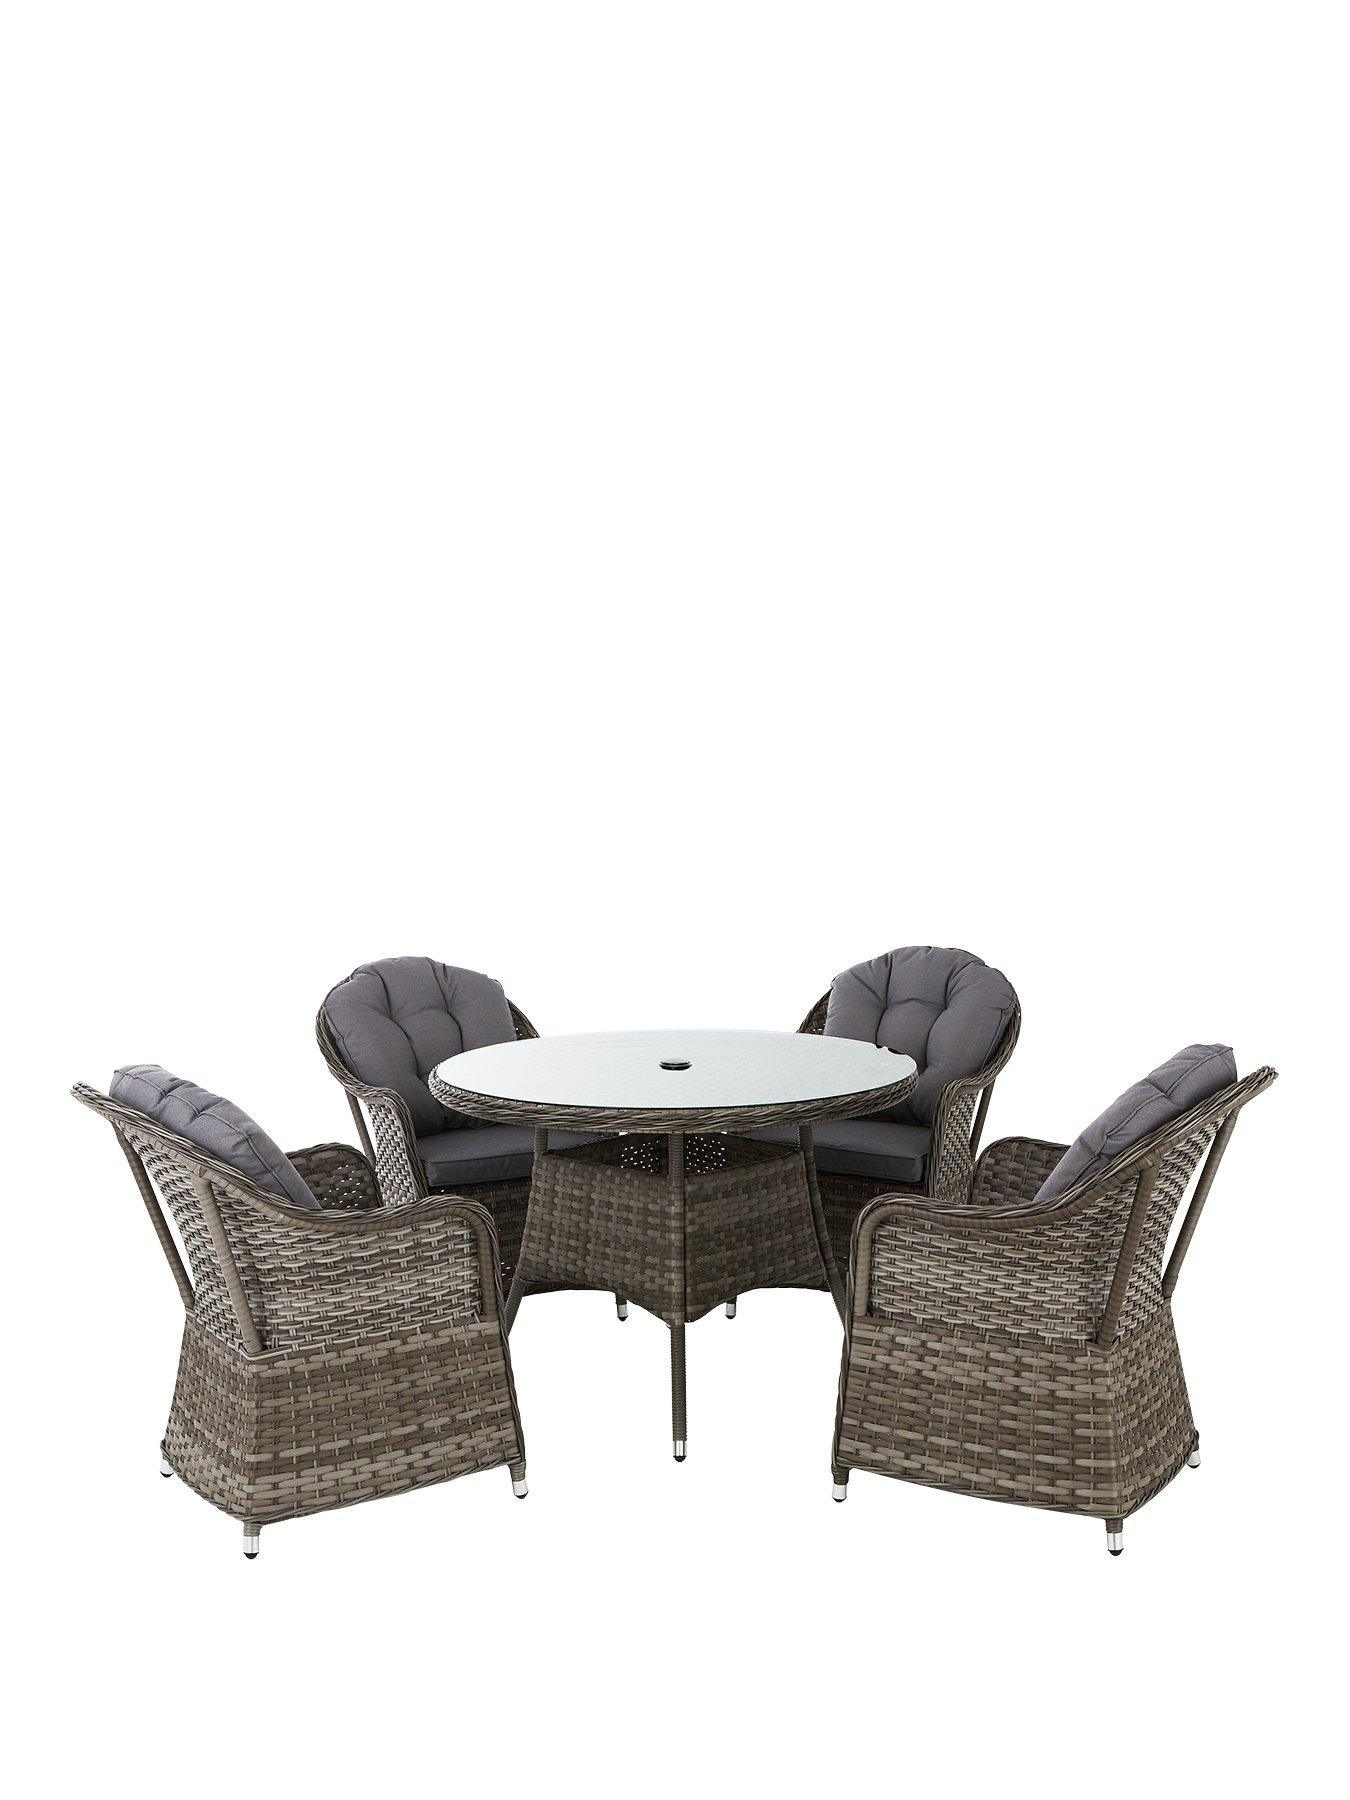 Well Furnir T-014 Grey Color Stylish Chair & Round Tables Durable 5 Piece Rattan Dining Set